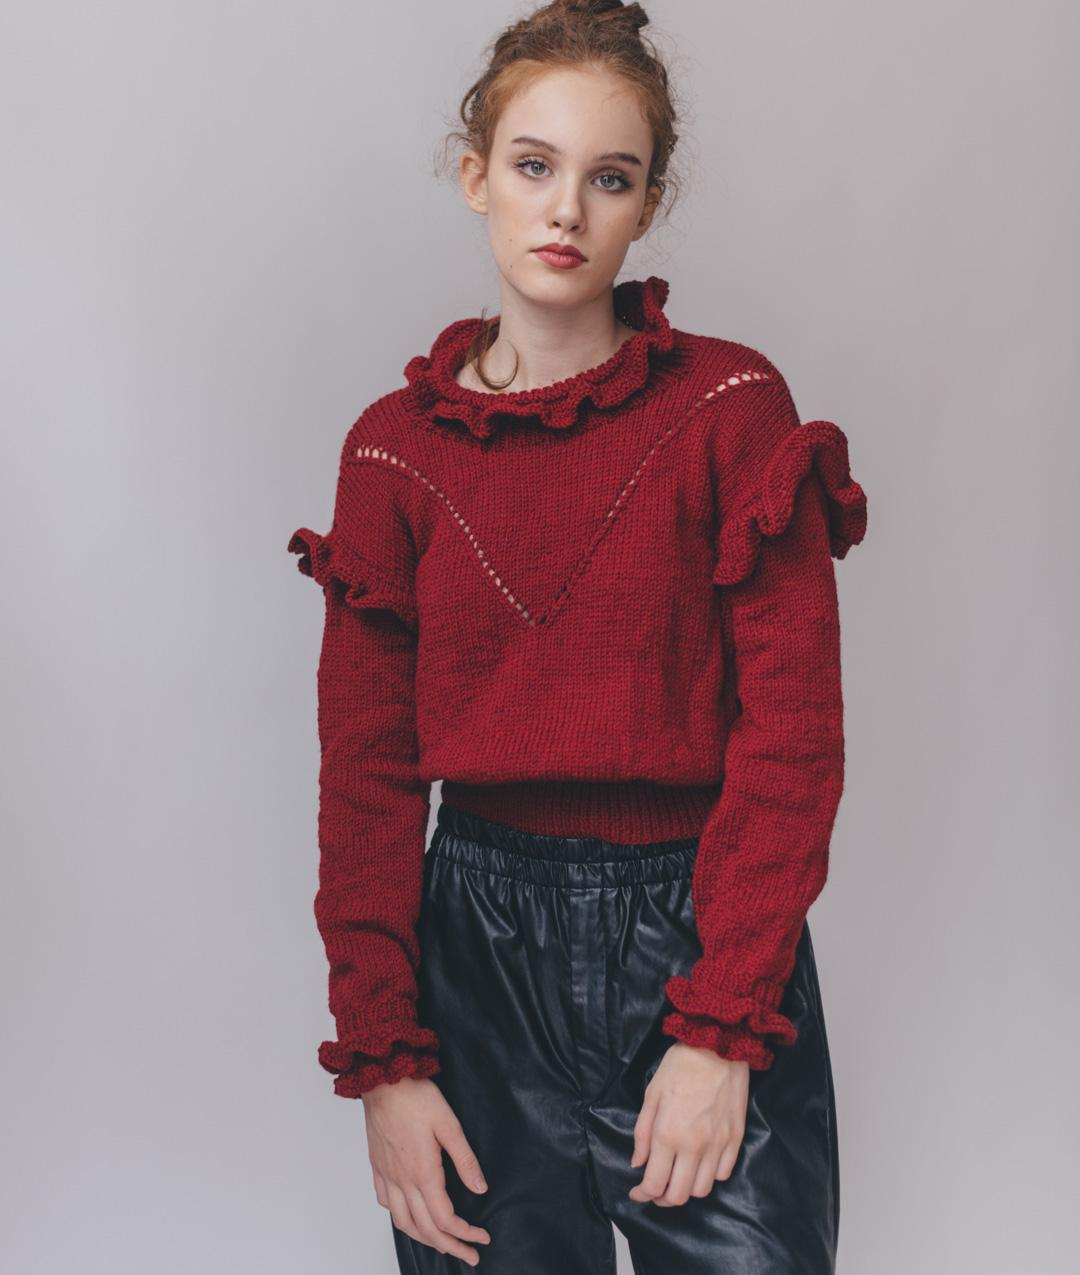 Sweaters and Tops - Wool - THE PARTY SWEATER - 1